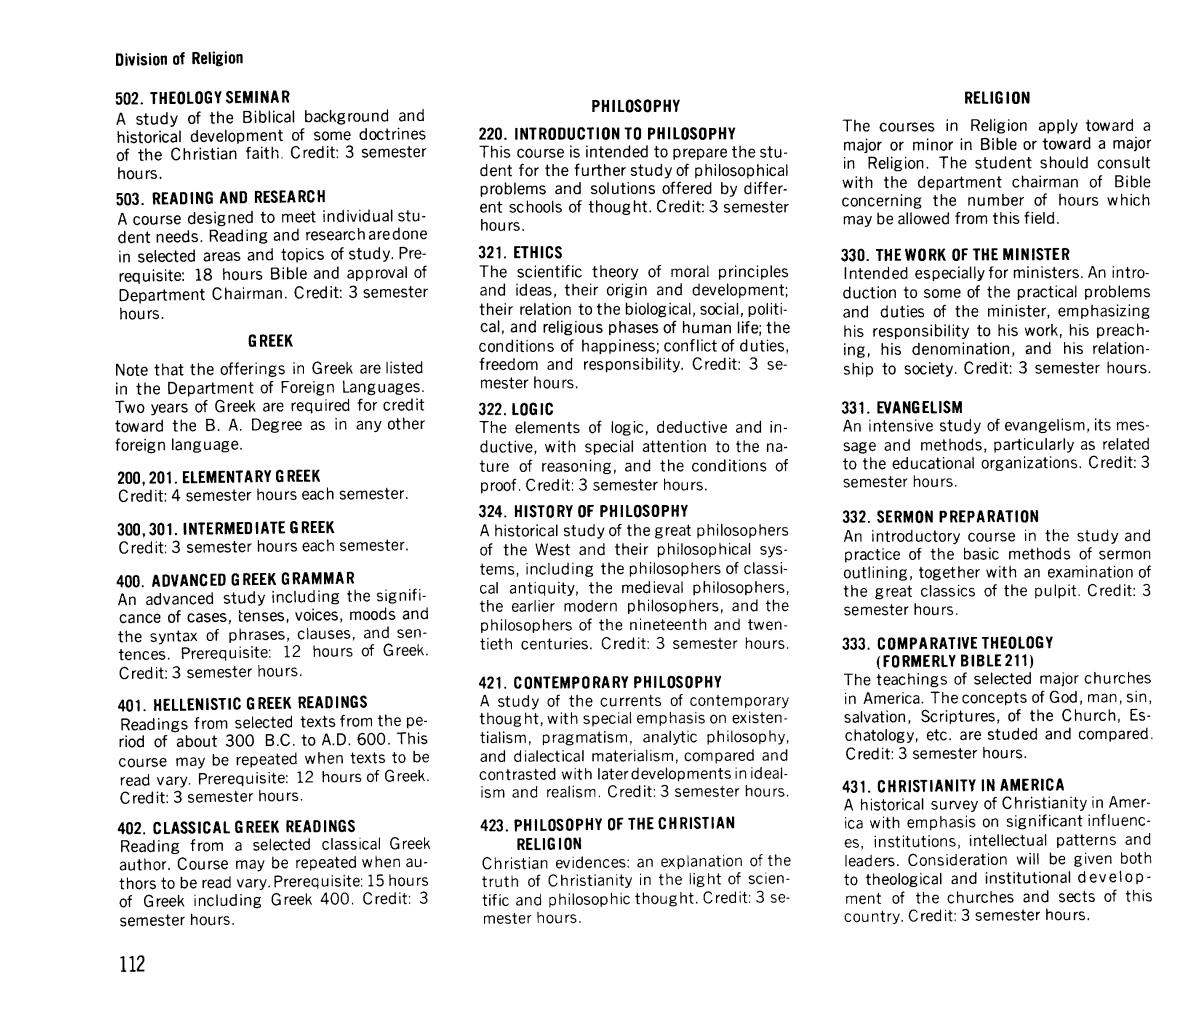 catalog of hardin simmons university 1972 1973 page 112 the